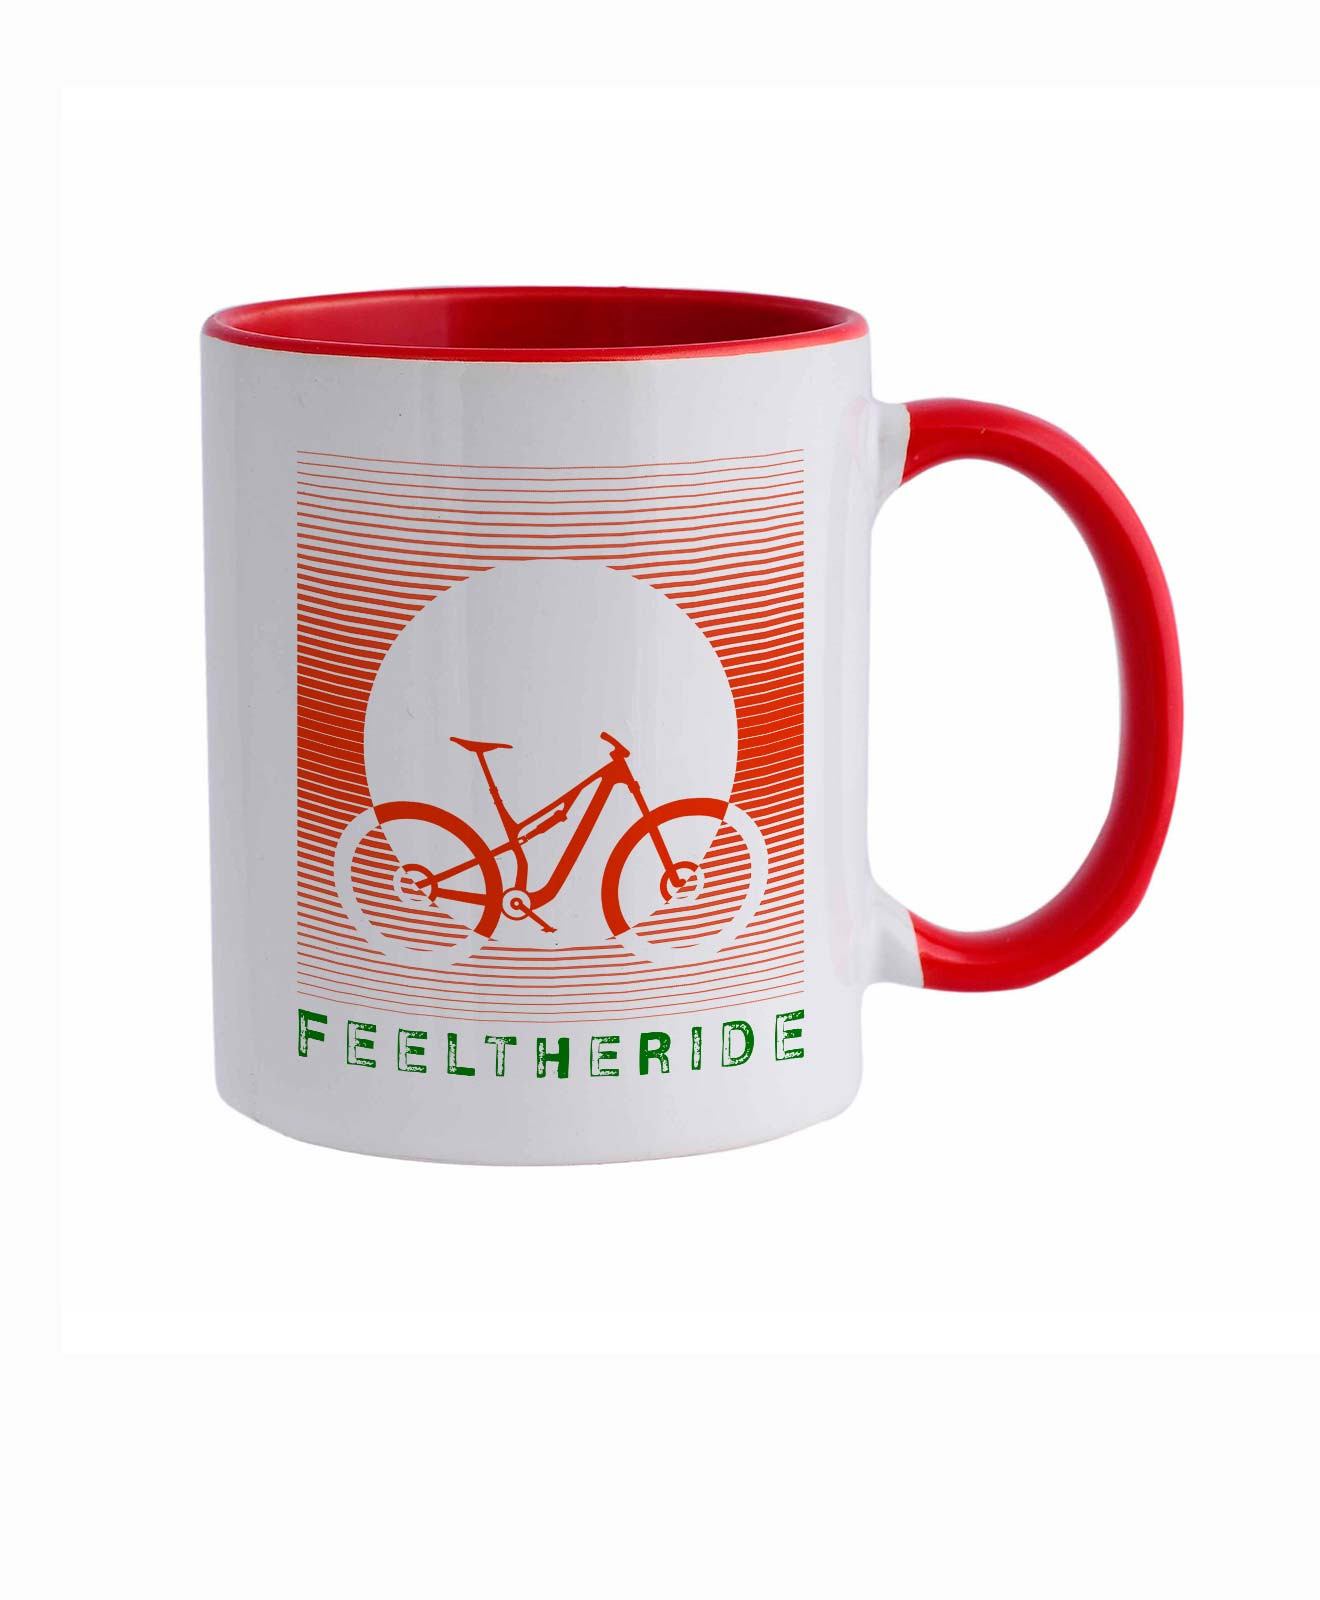 Feel the ride with your bike Mug MTB Red